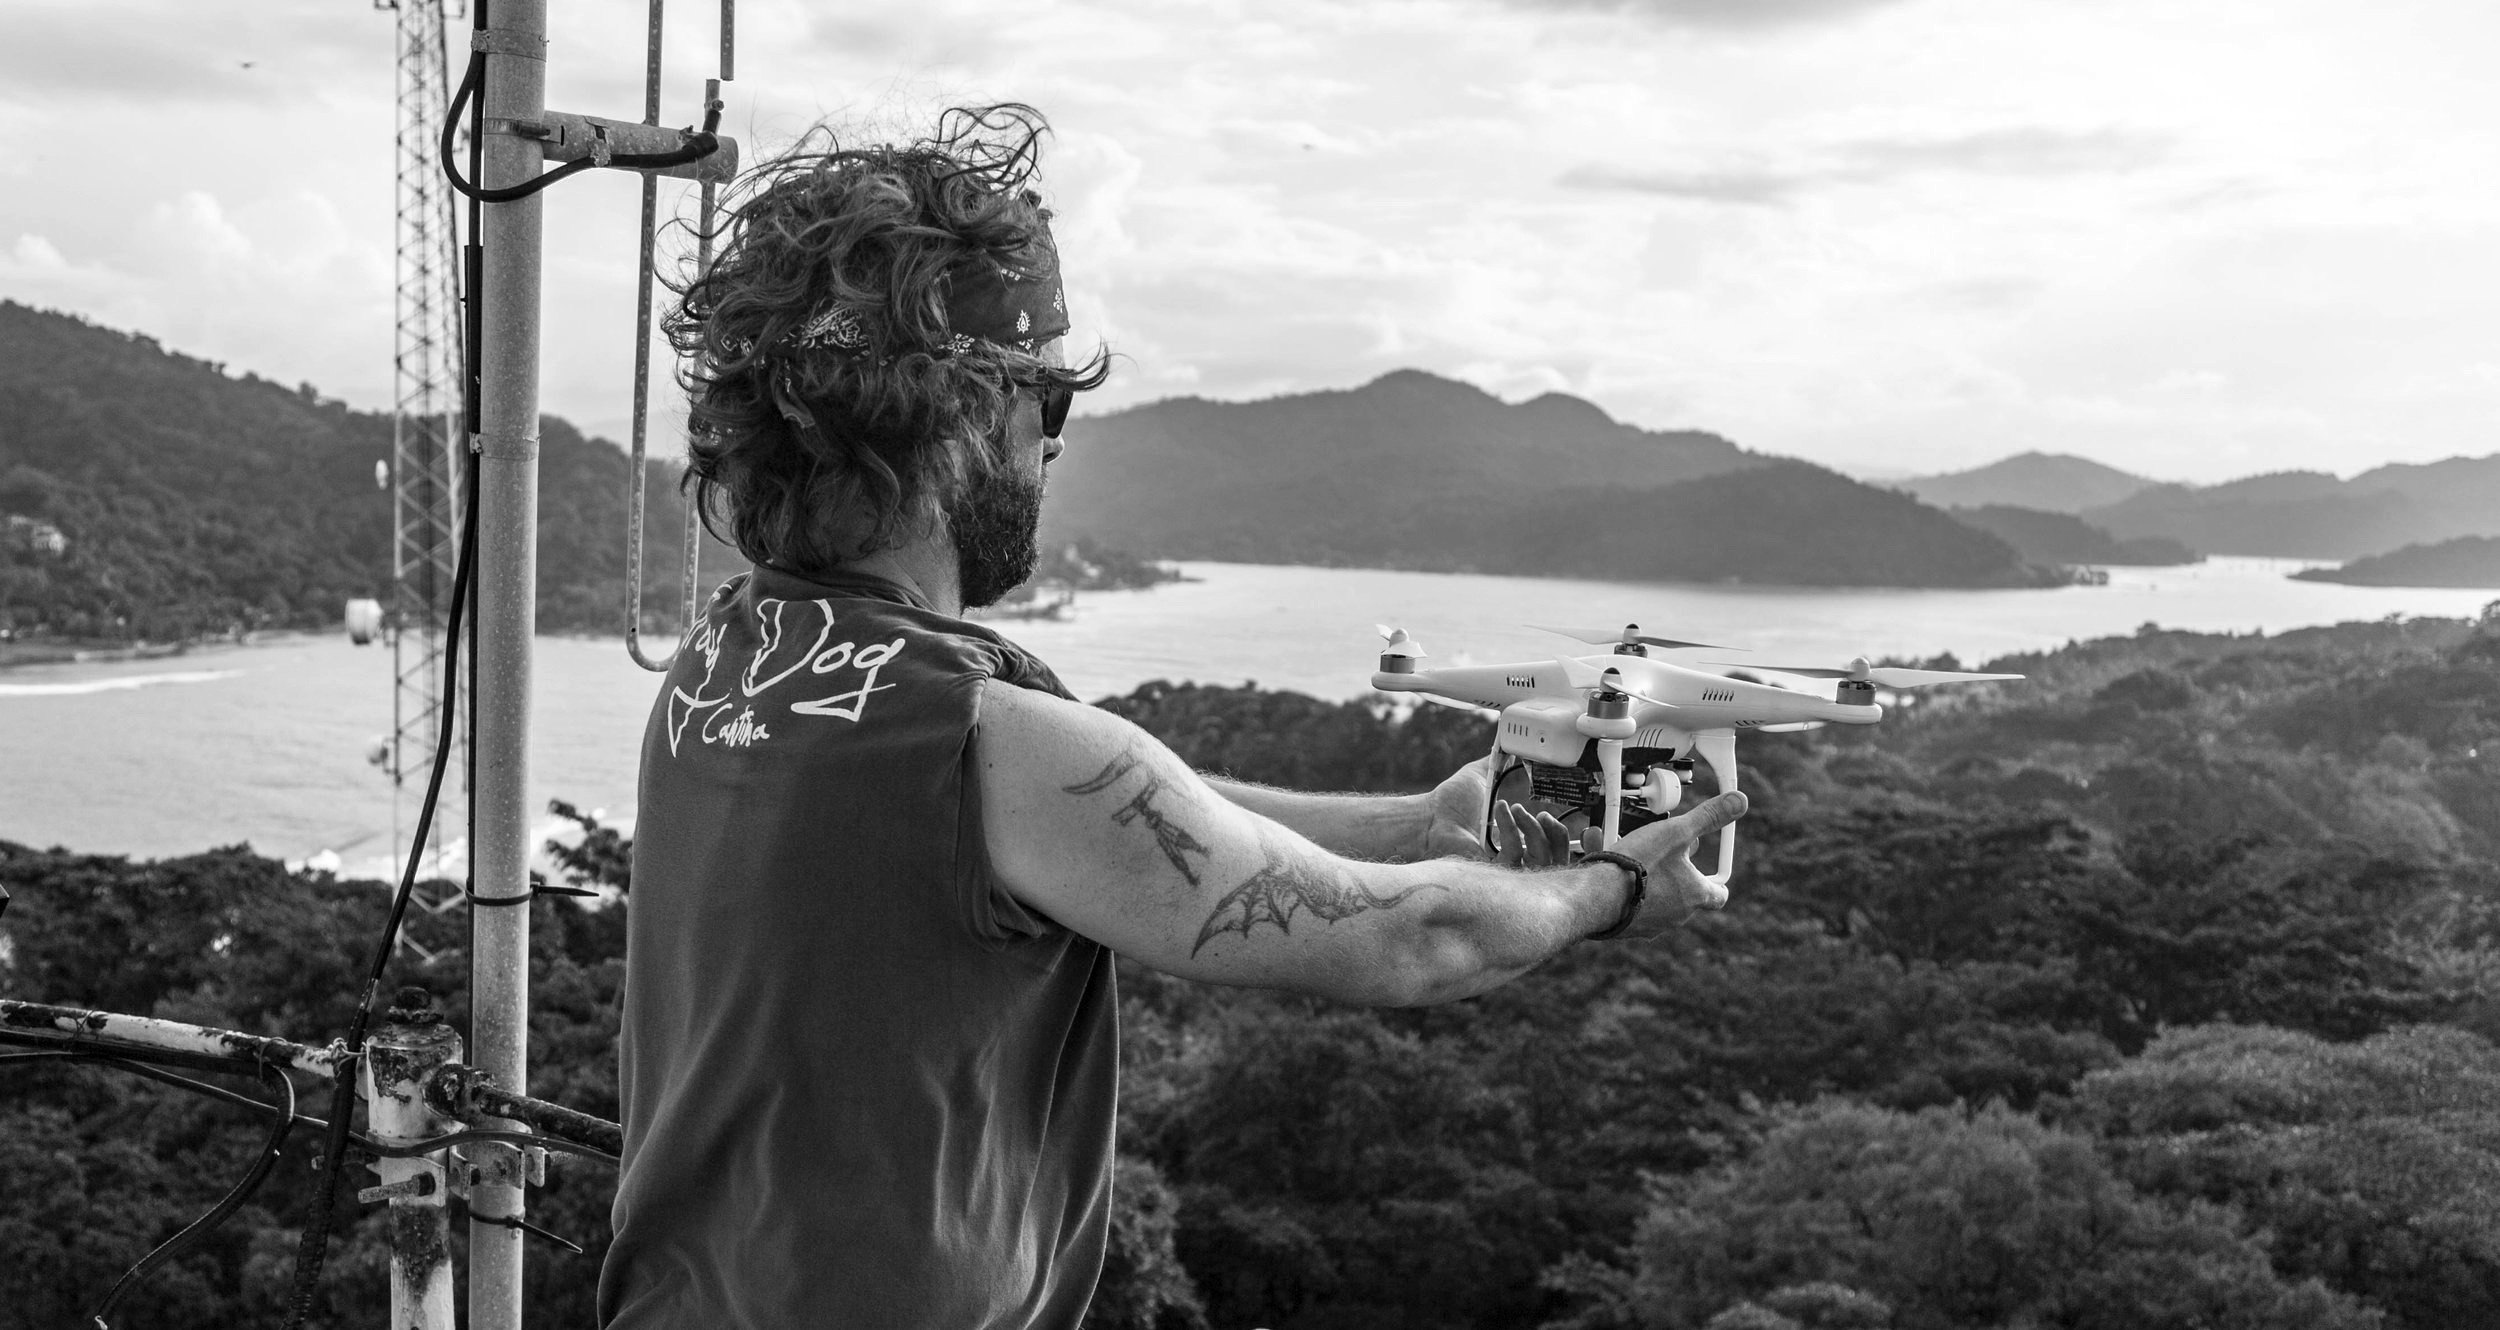 Catching a quadcopter on assignment near Panama. (2014) Photo: Scott Hardesty (www.scotthardestymedia.com)